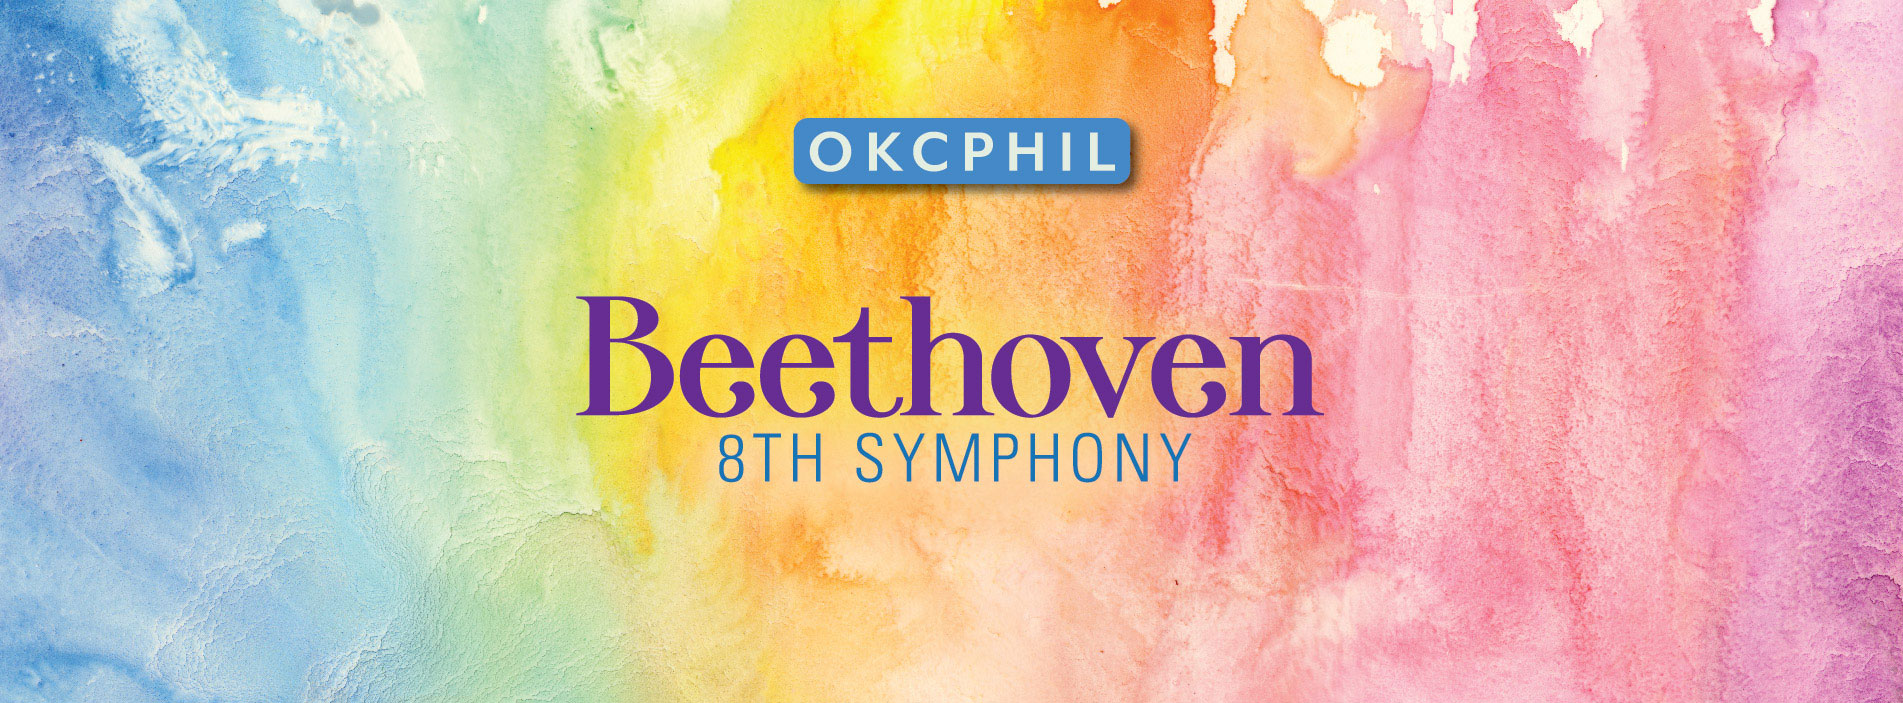 Beethoven's 250th Birthday Celebration